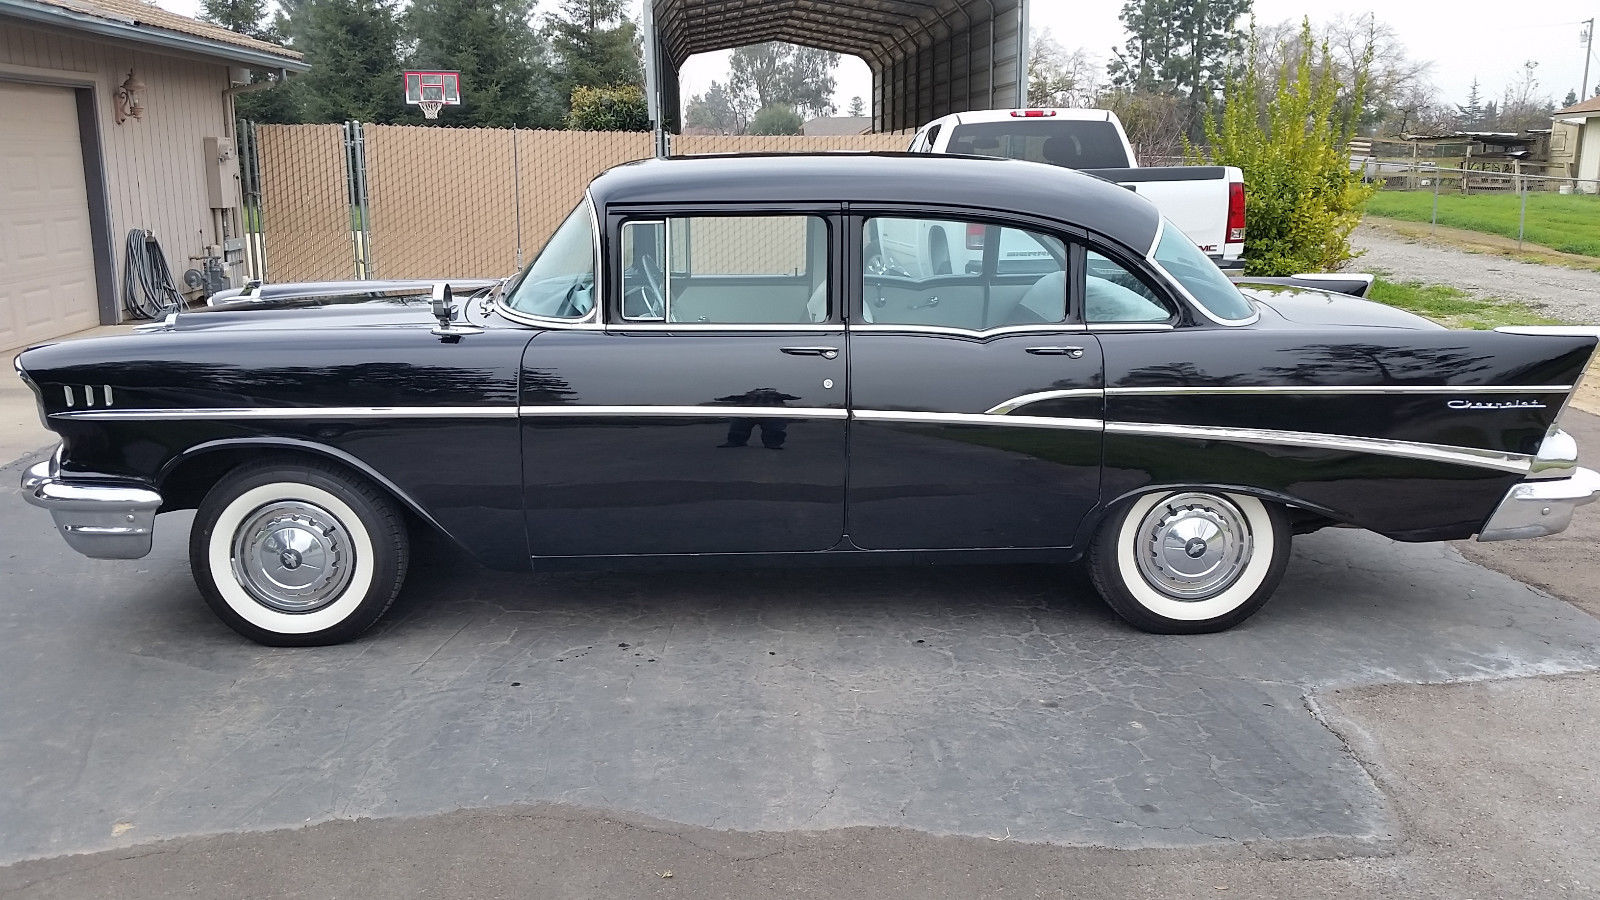 1957 chevy 210 classic car v8 engine black 4 door classic chevrolet bel air 150 210 1957 for sale. Black Bedroom Furniture Sets. Home Design Ideas